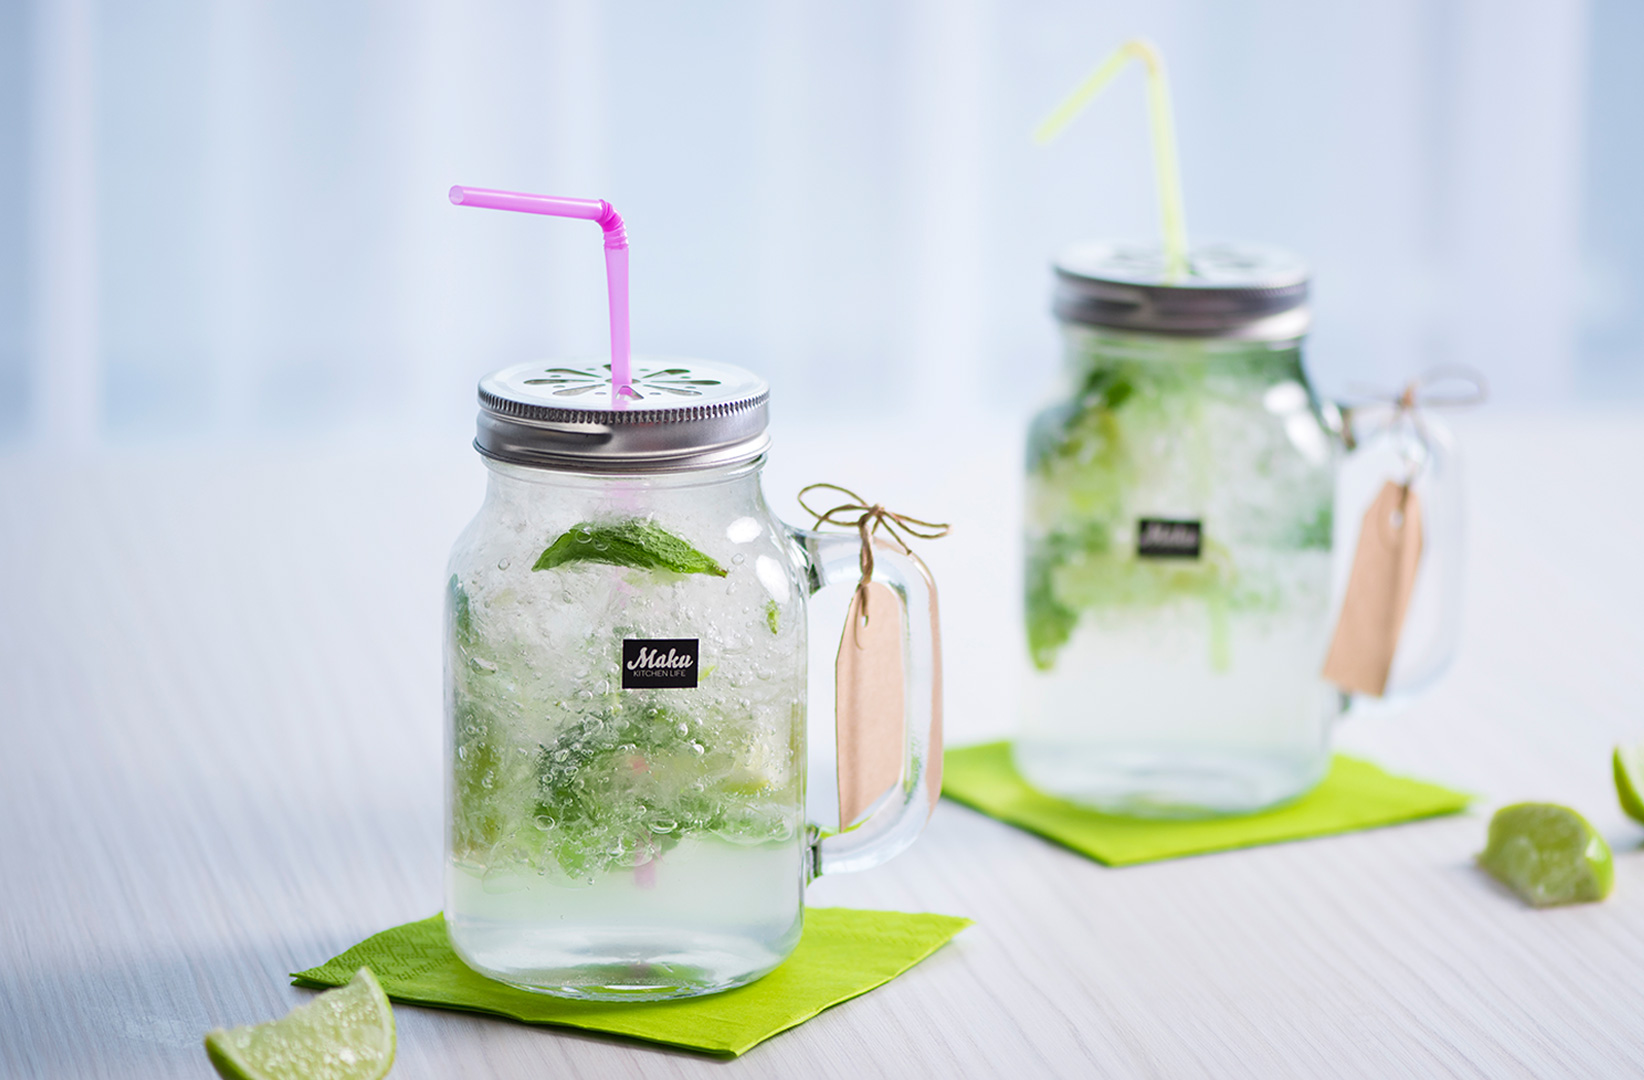 maku-kitchen-inspiraatio-reseptit-virgin-mojito